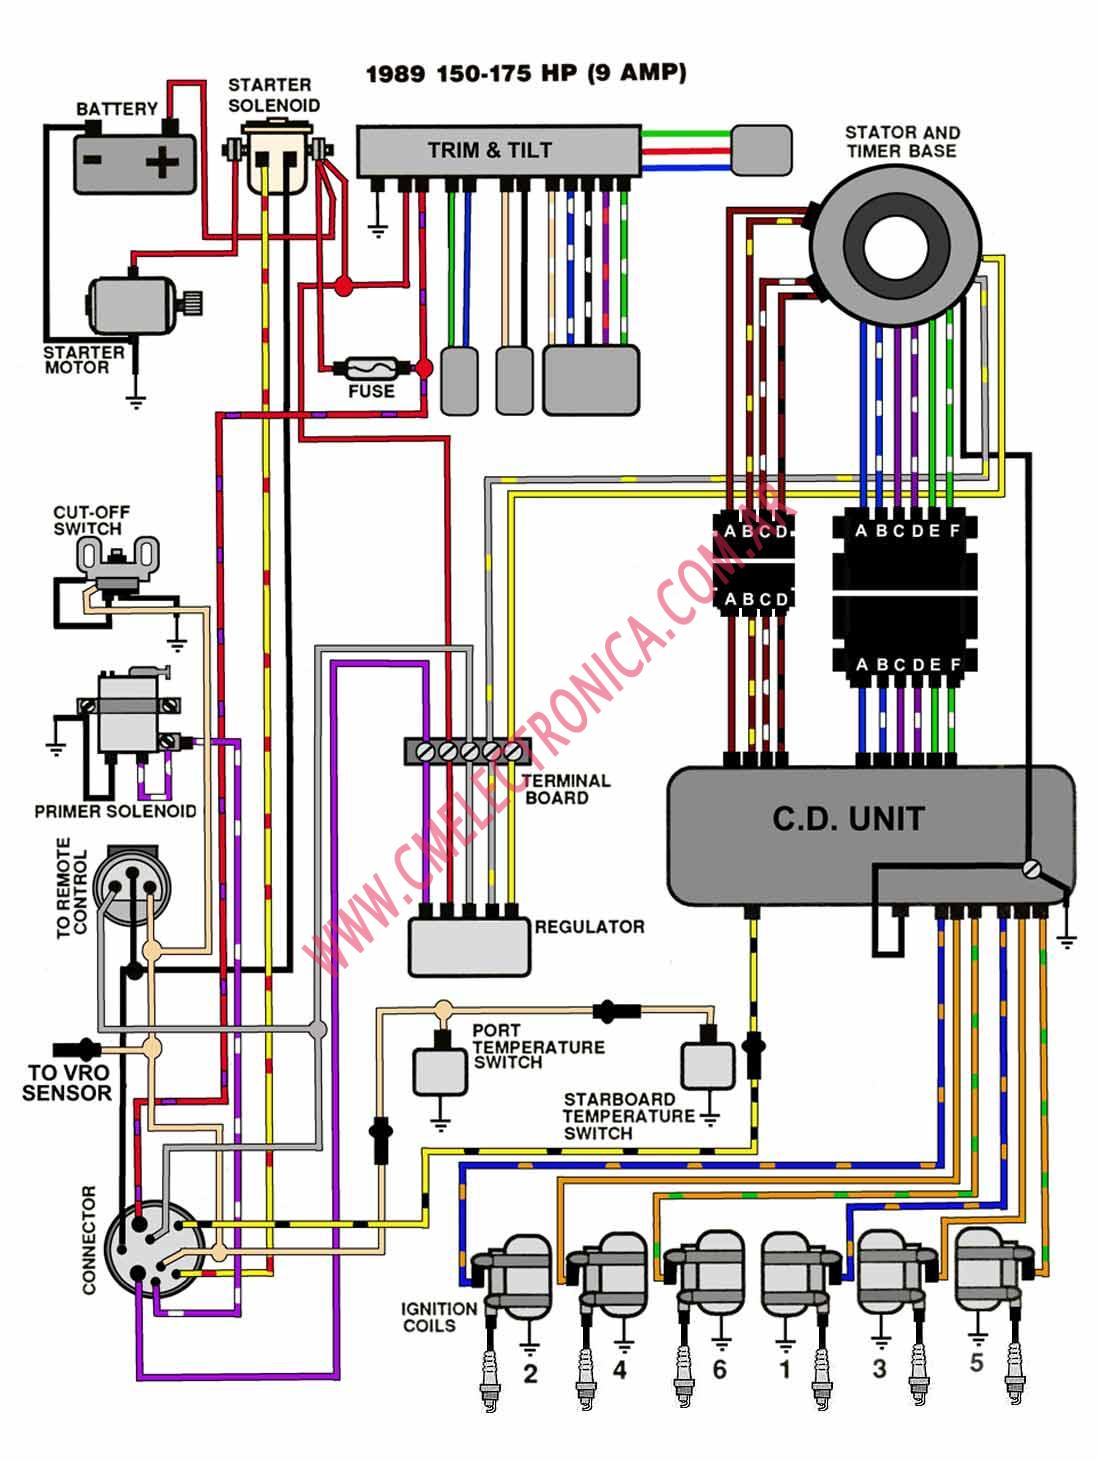 wiring diagram for yamaha 115 outboard outboard engine wiring diagram mercury 40 1979 wirdig force outboard wiring diagram likewise 115 hp mercury